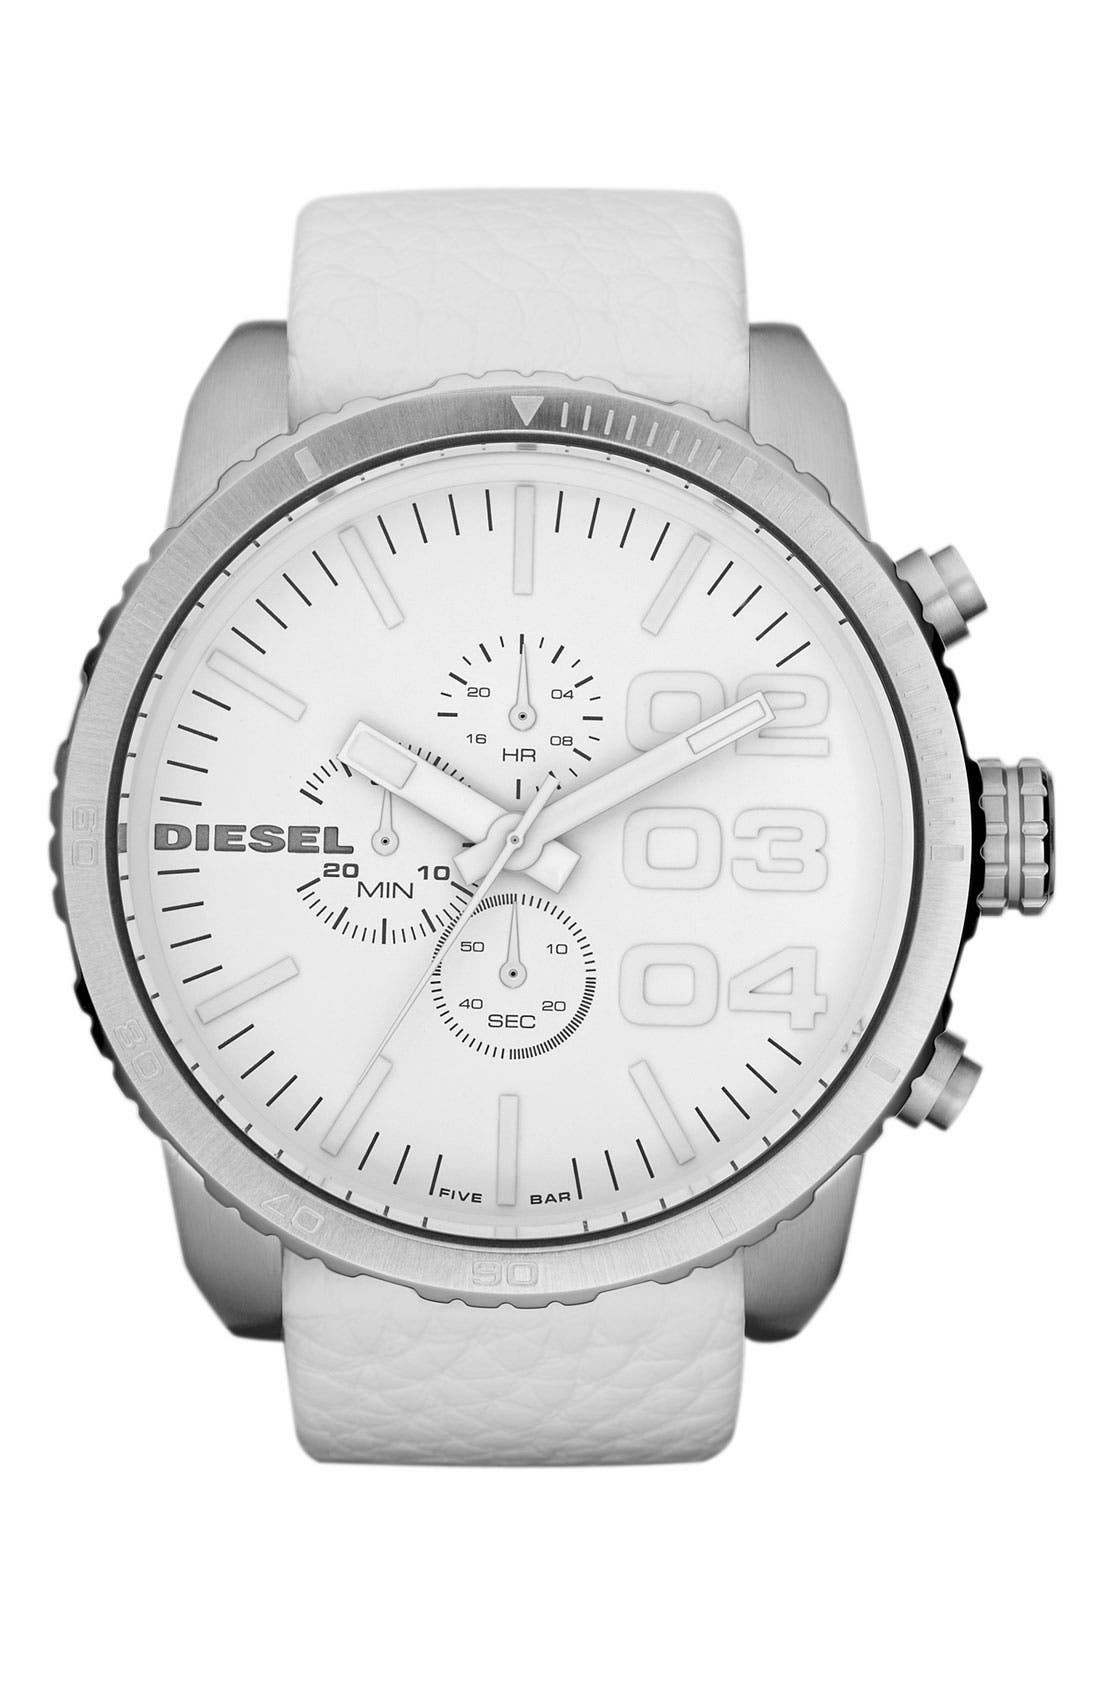 Main Image - DIESEL® 'Double Down' Large Chronograph Watch, 51mm